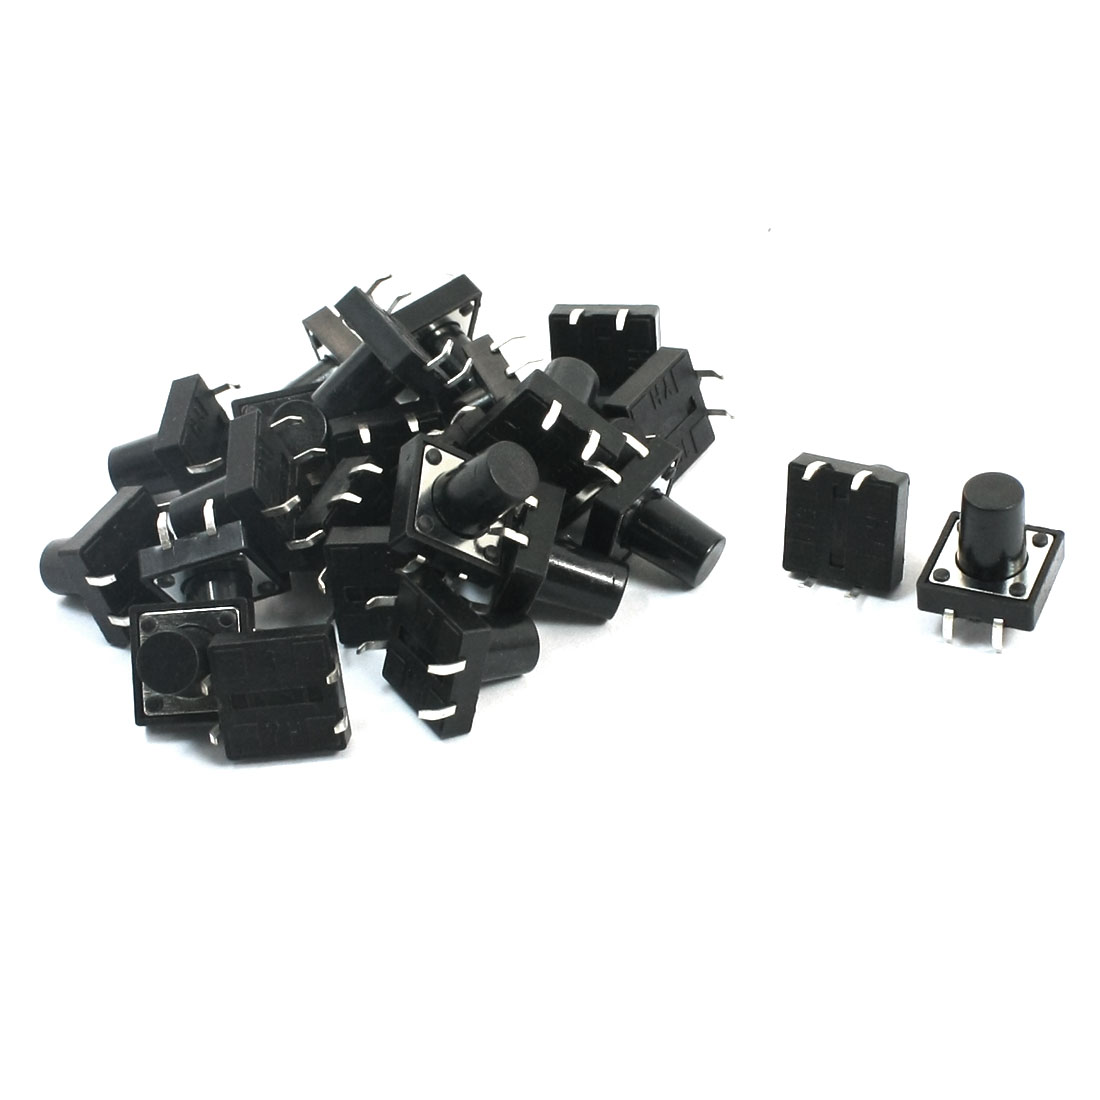 25Pcs Momentary PCB Pushbutton Push Button Tact Tactile Switch DIP 12mmx12mmx12mm